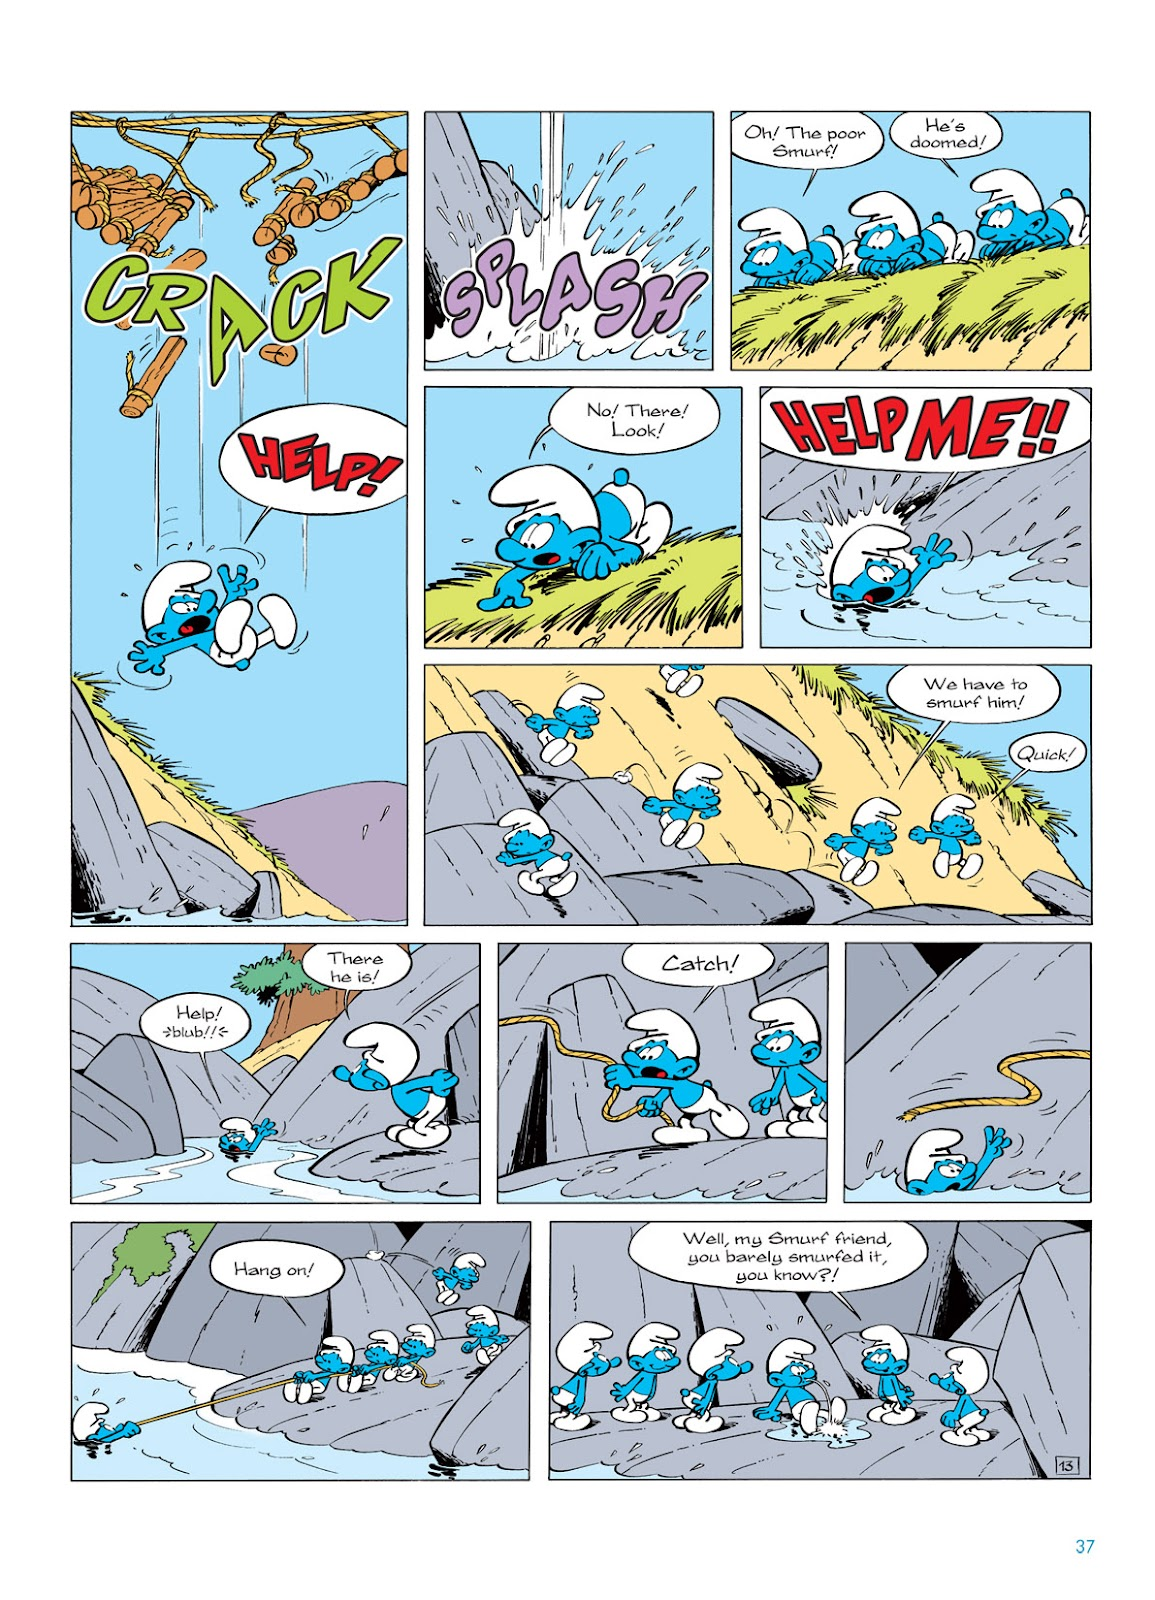 Read online The Smurfs comic -  Issue #5 - 37